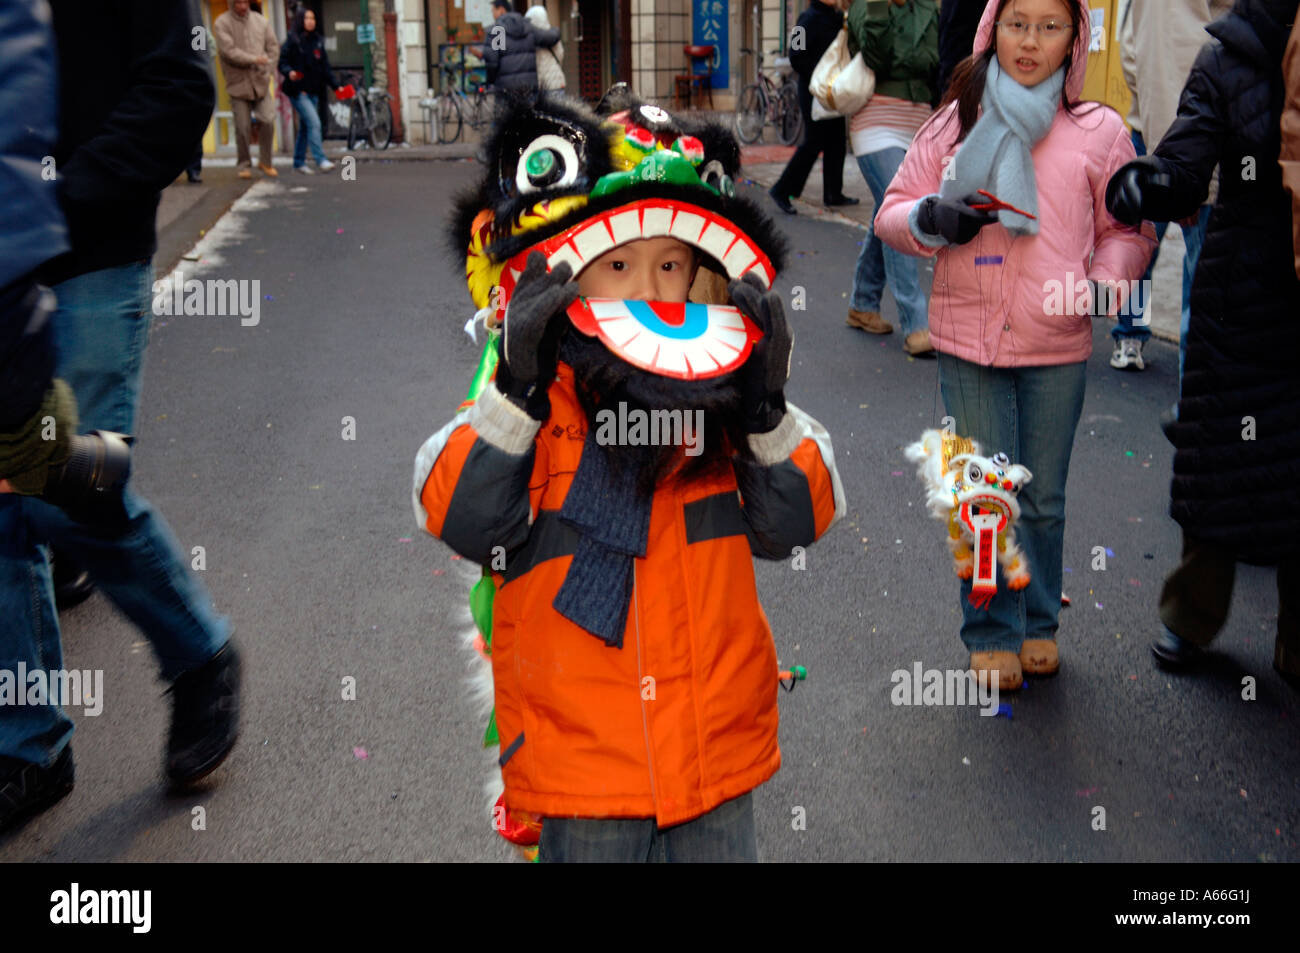 ca8dc924e Child wears lion dancing costume in Chinatown in NYC during the ...